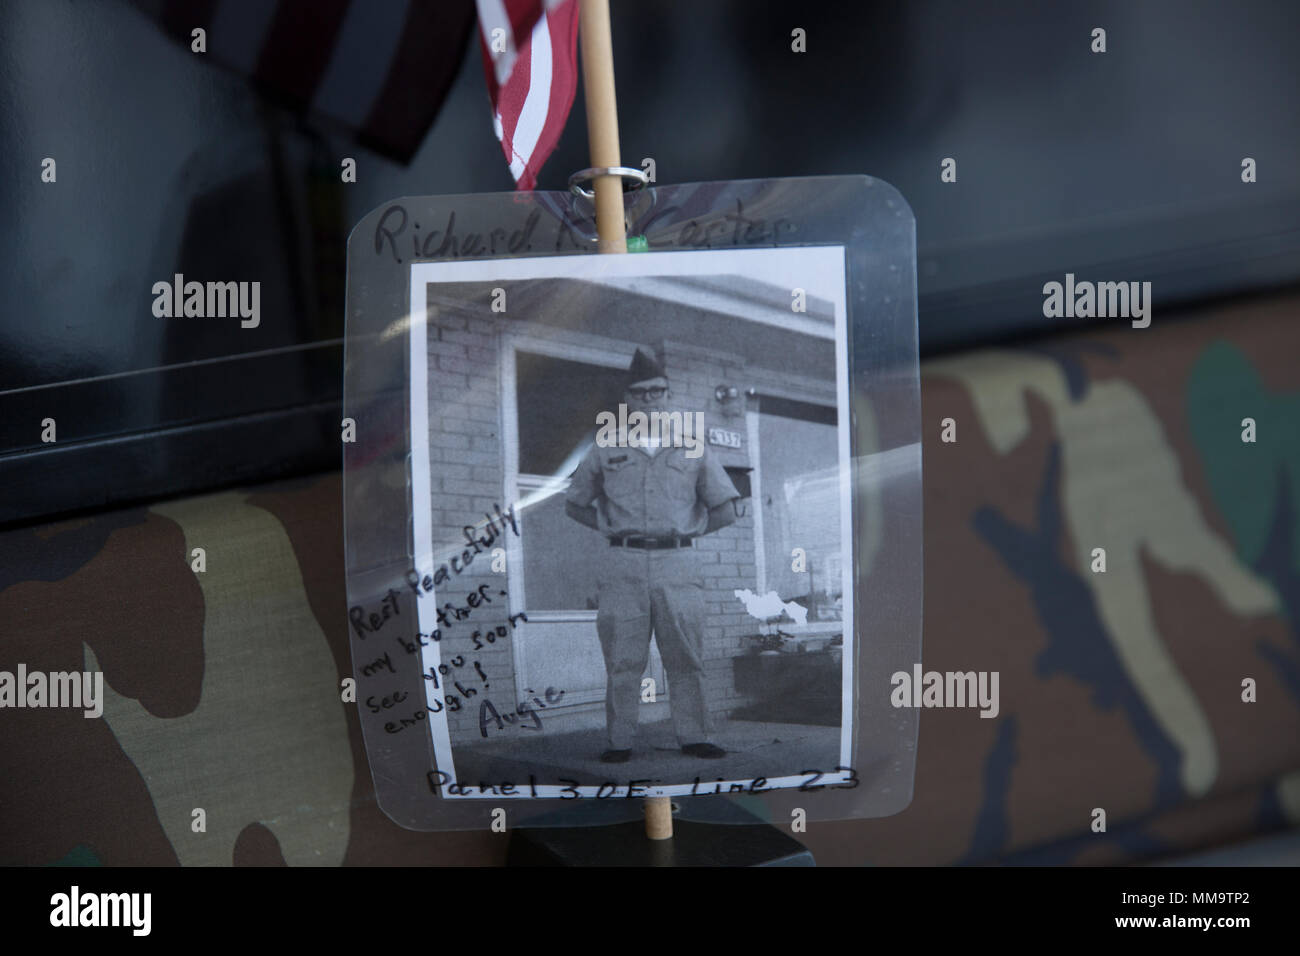 "A picture of Sgt. Richard Carter, a soldier who died during the Vietnam War, rests in front of the Mobile Vietnam Memorial Wall, also known as the AV Wall, during the 2017 Marine Corps Air Station Miramar Air Show at MCAS Miramar, Calif., Sept. 22. Carter's brother, Augie Anderson, is an AV Wall volunteer and placed the flag and photograph as a way to remember Carter, who died Nov. 19, 1967.  Anderson wrote ""Rest peacefully my brother, see you soon enough!"" (U.S. Marine Corps photo by Sgt. Lillian Stephens/Released) - Stock Image"